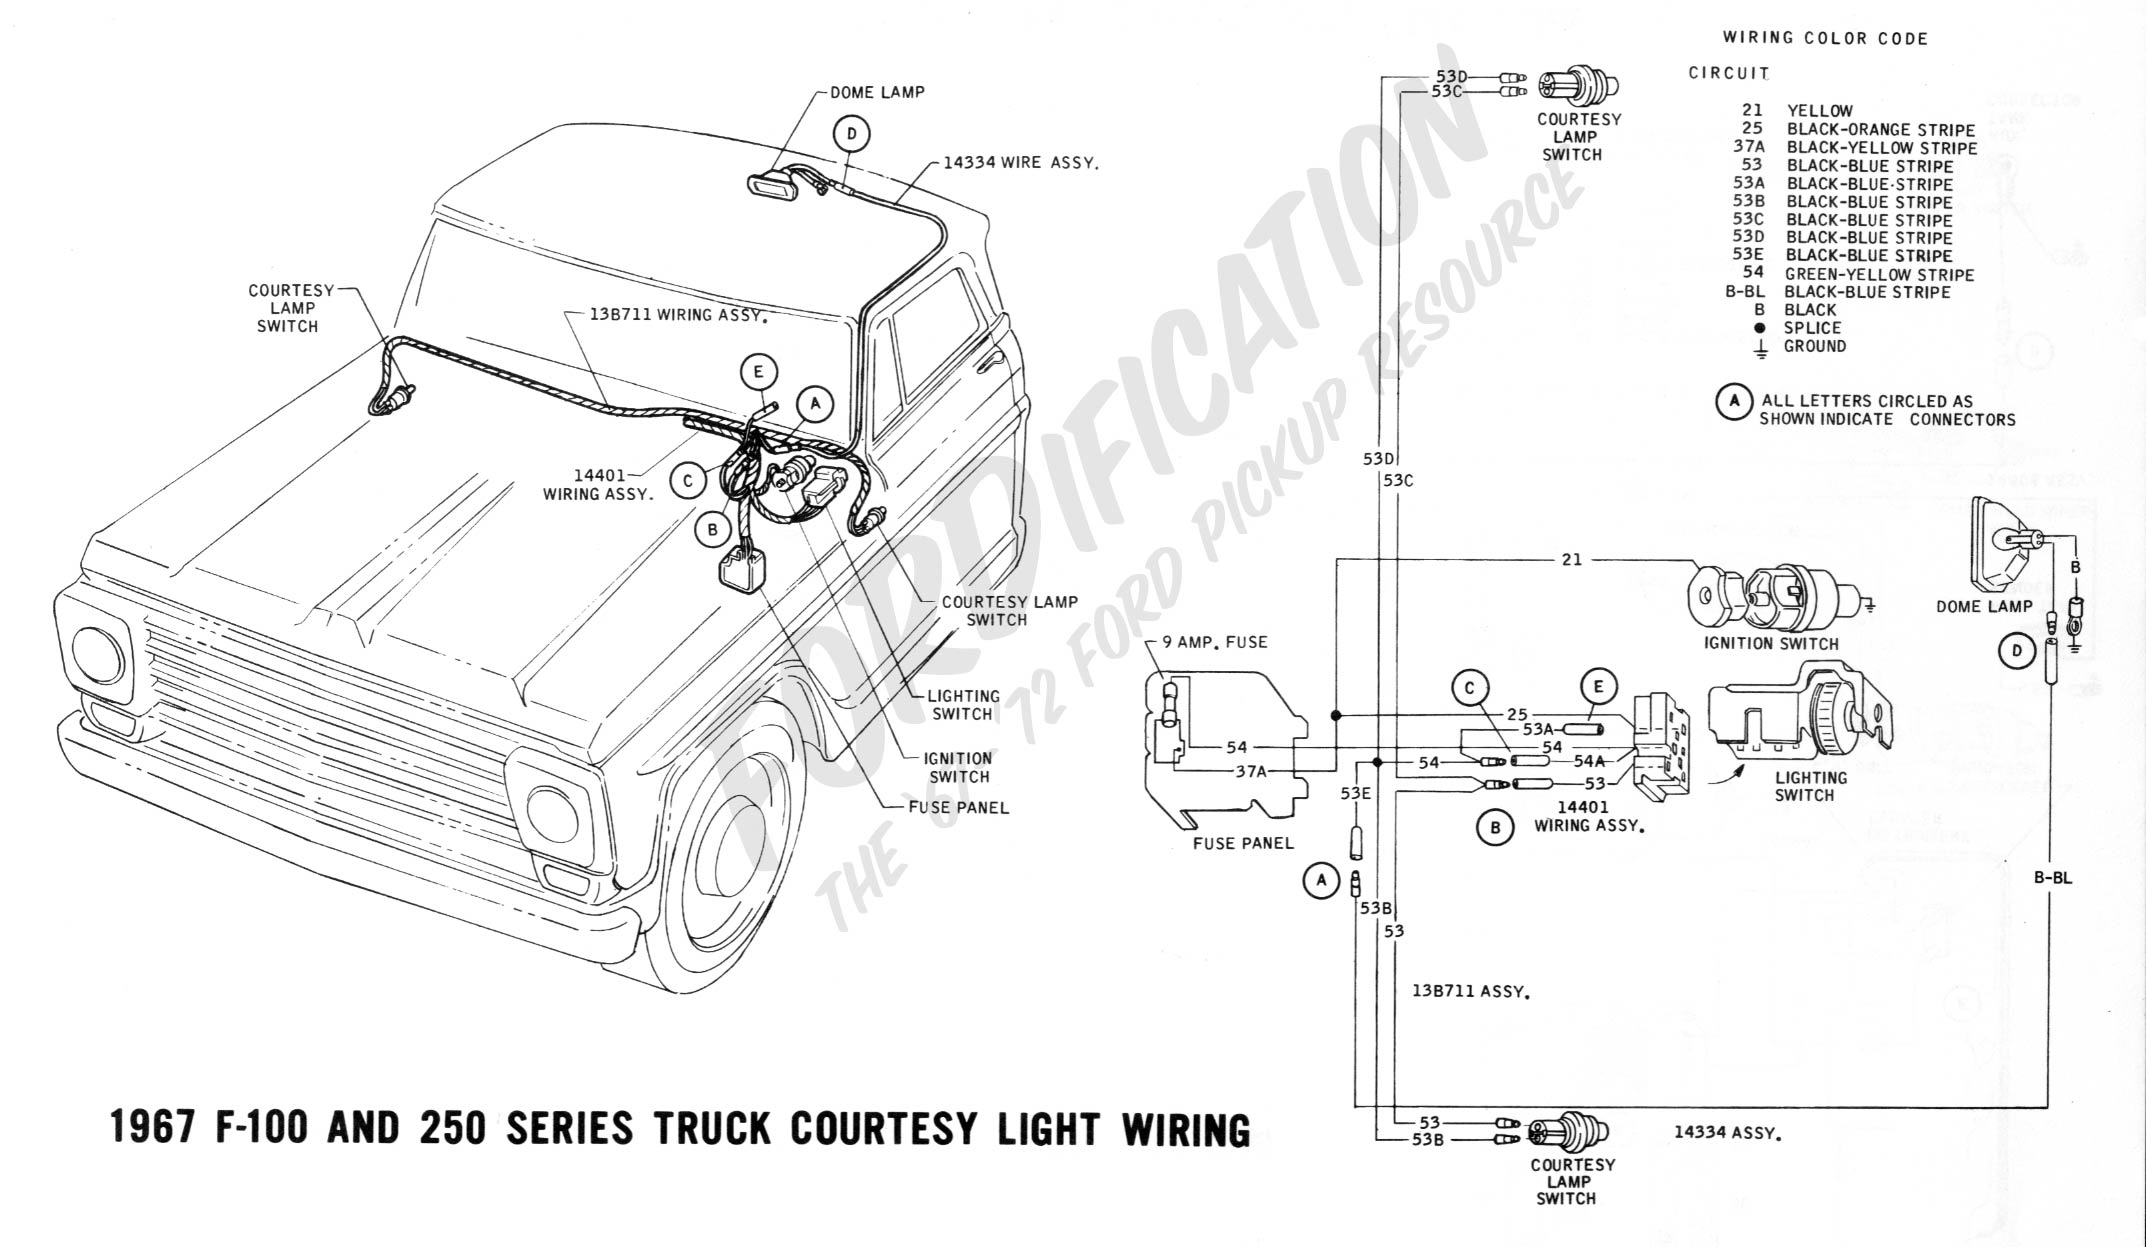 1967 Ford Truck Wiring Diagram Third Level 78 Bronco Horn F150 Todays Tires Pickup